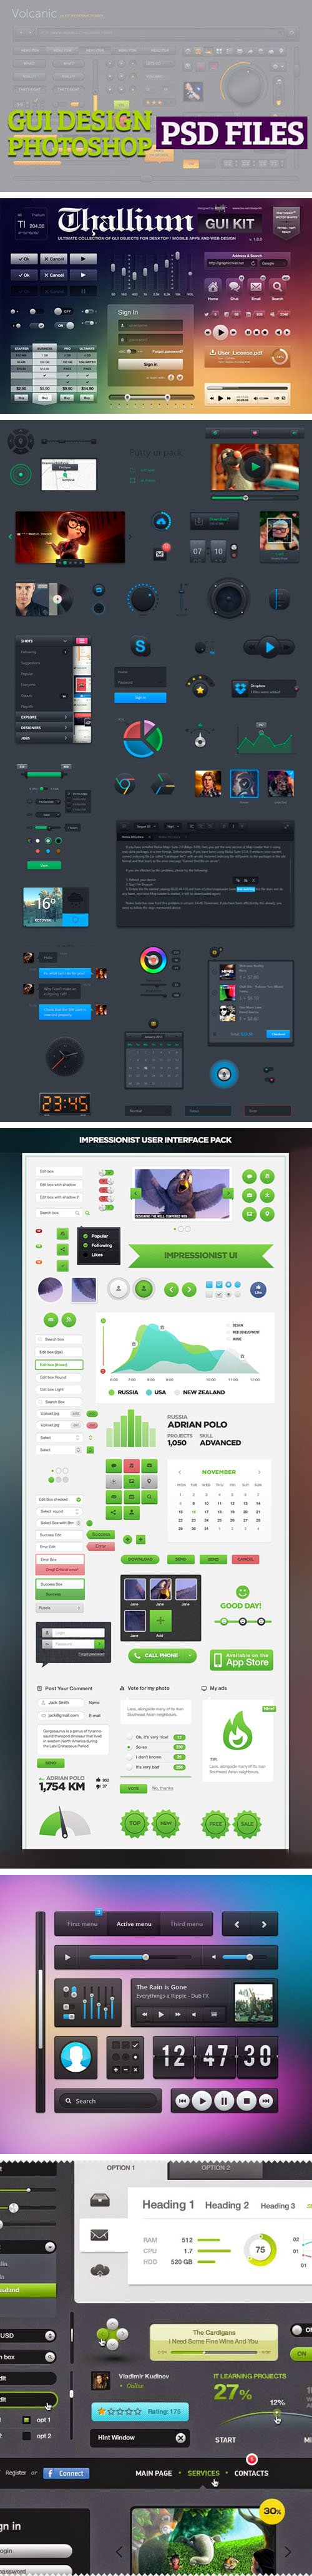 5 Fantastic GUI KIT Photoshop PSD Sets